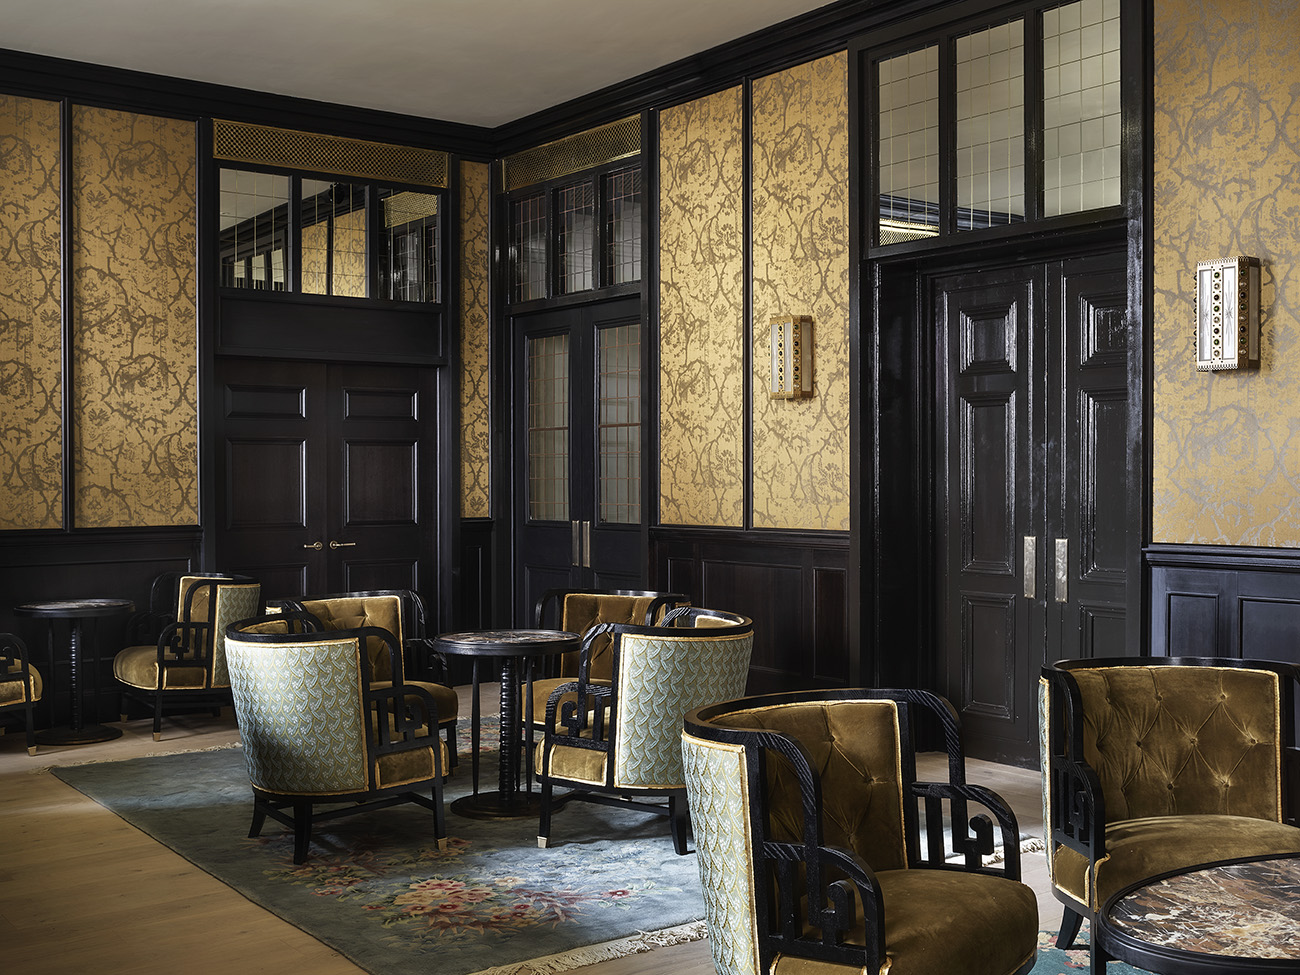 Wallpaper is used heavily across Roman and William's interiors, which pick up cues from the Covent Garden location and its floral offerings